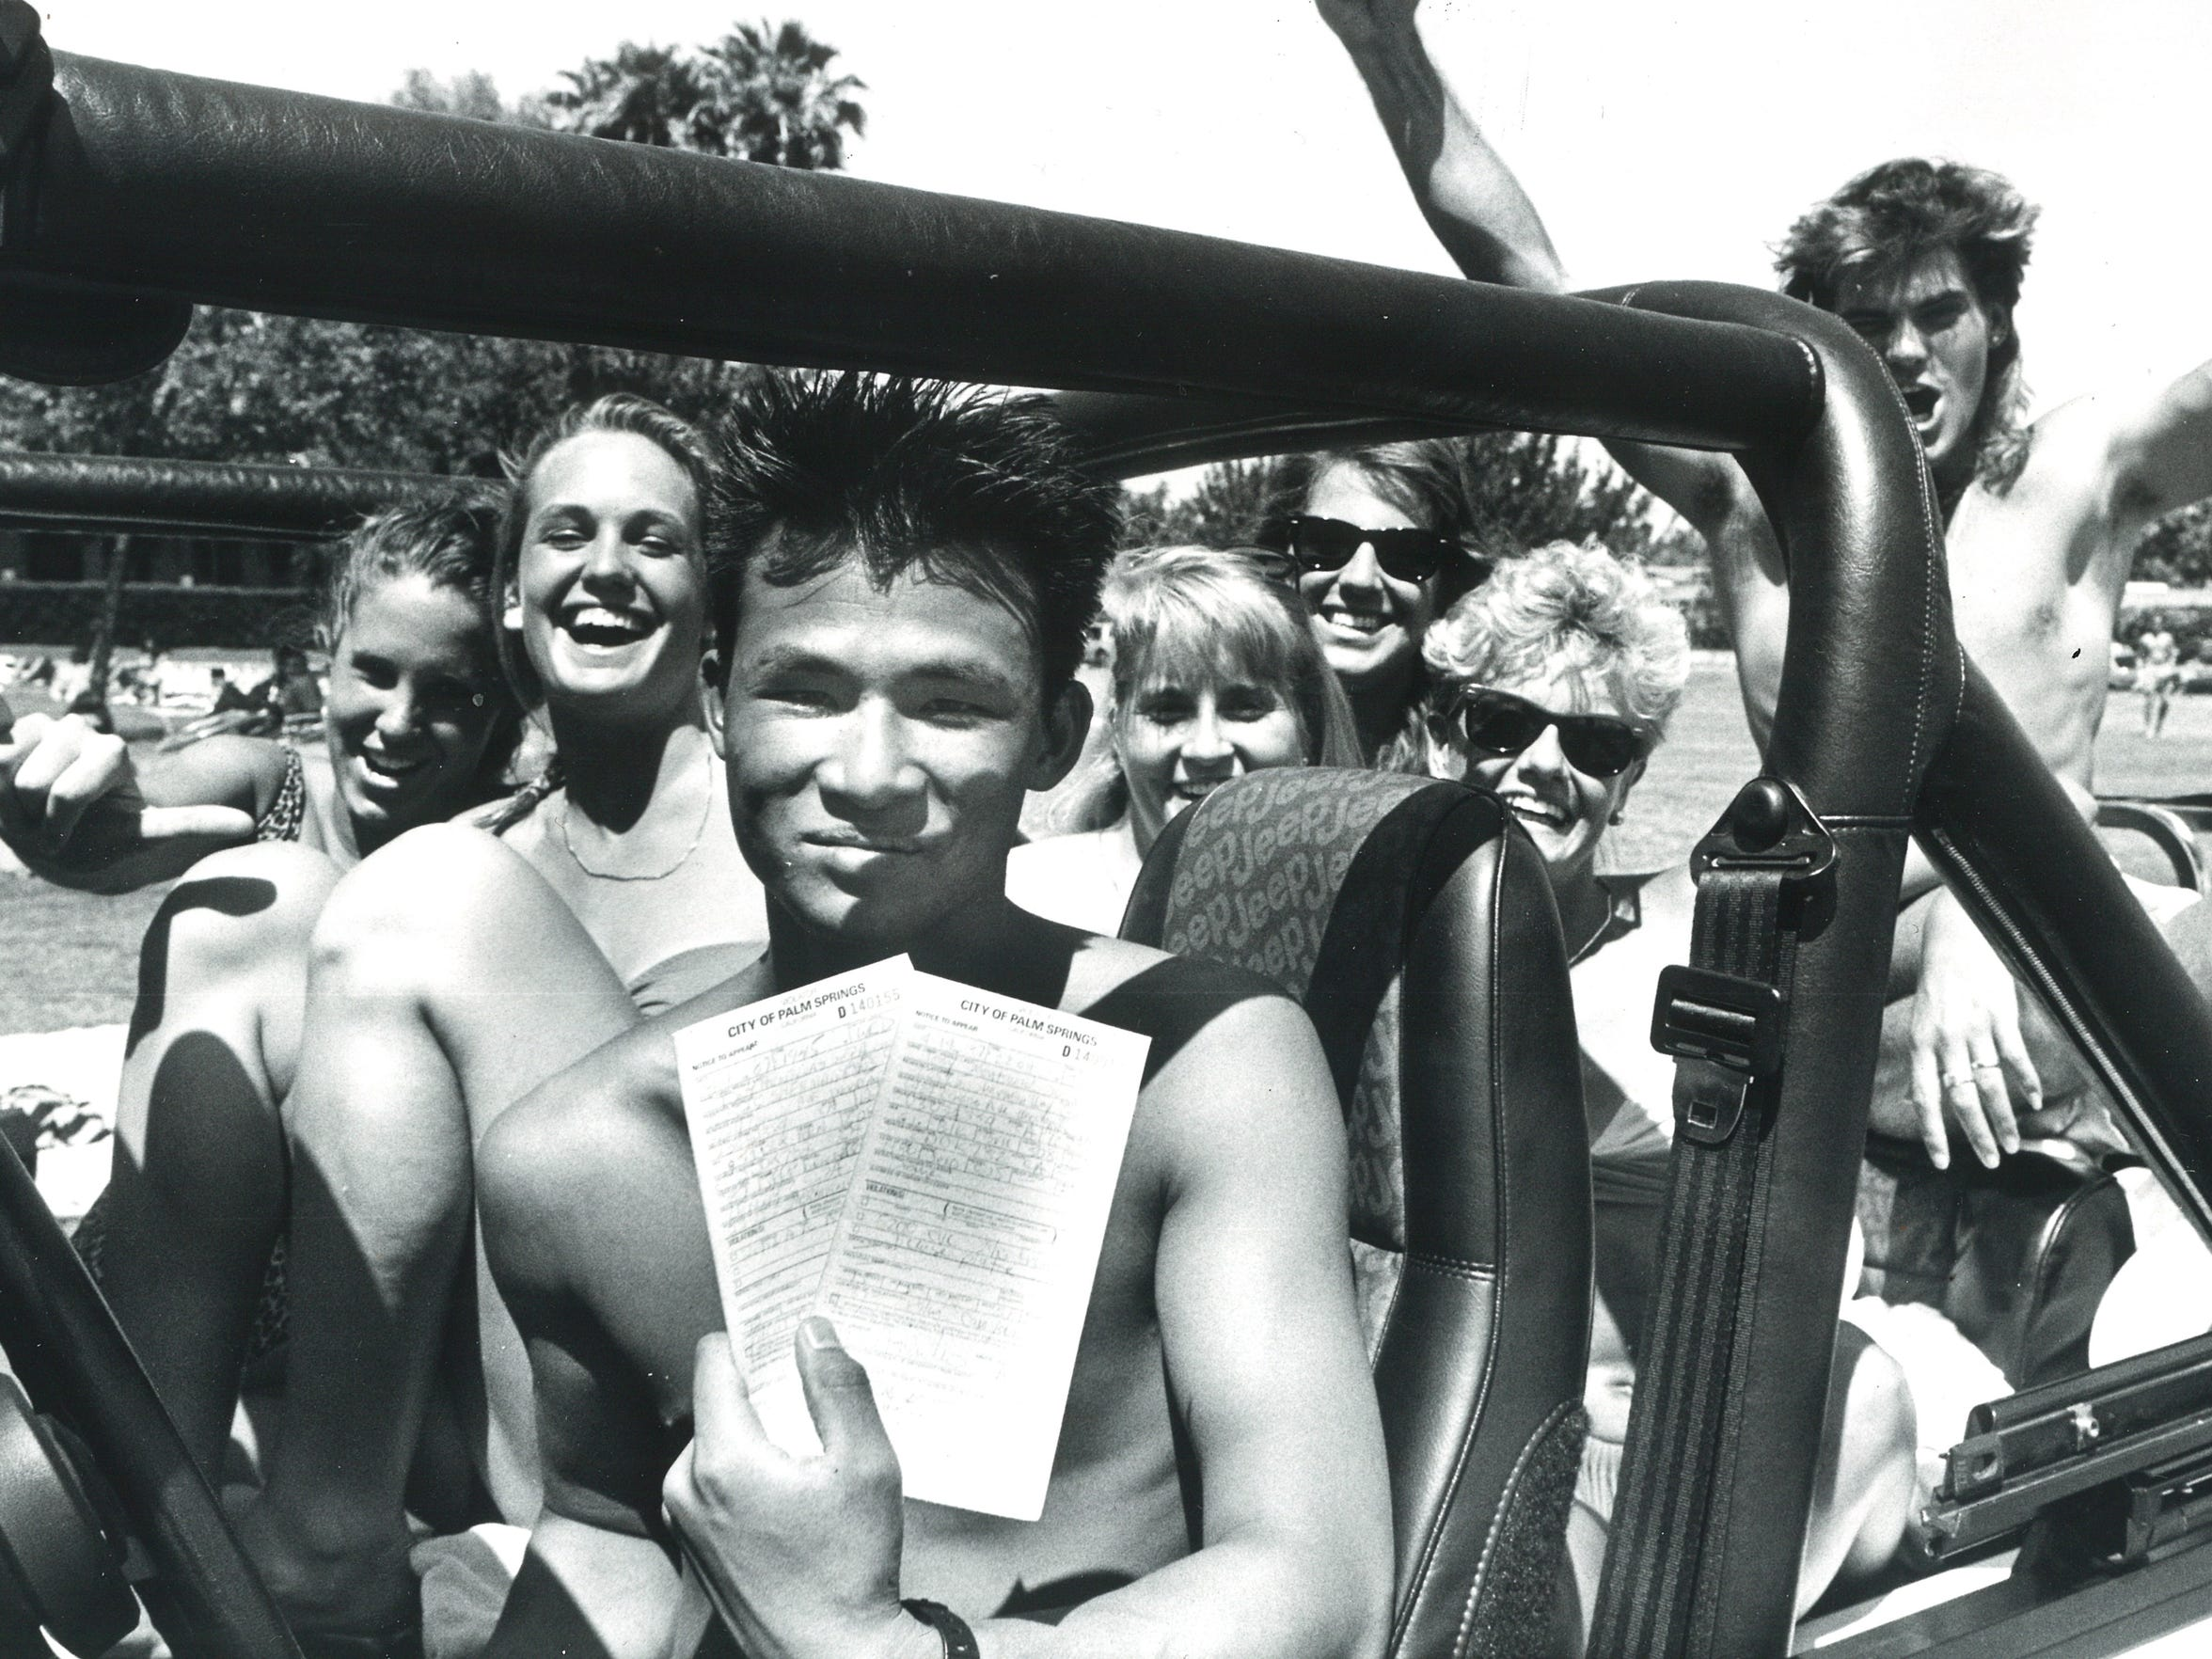 A spring breaker shows off a citation he received from Palm Springs police in 1987, when the city tried to quell the party with excessive ticketing.